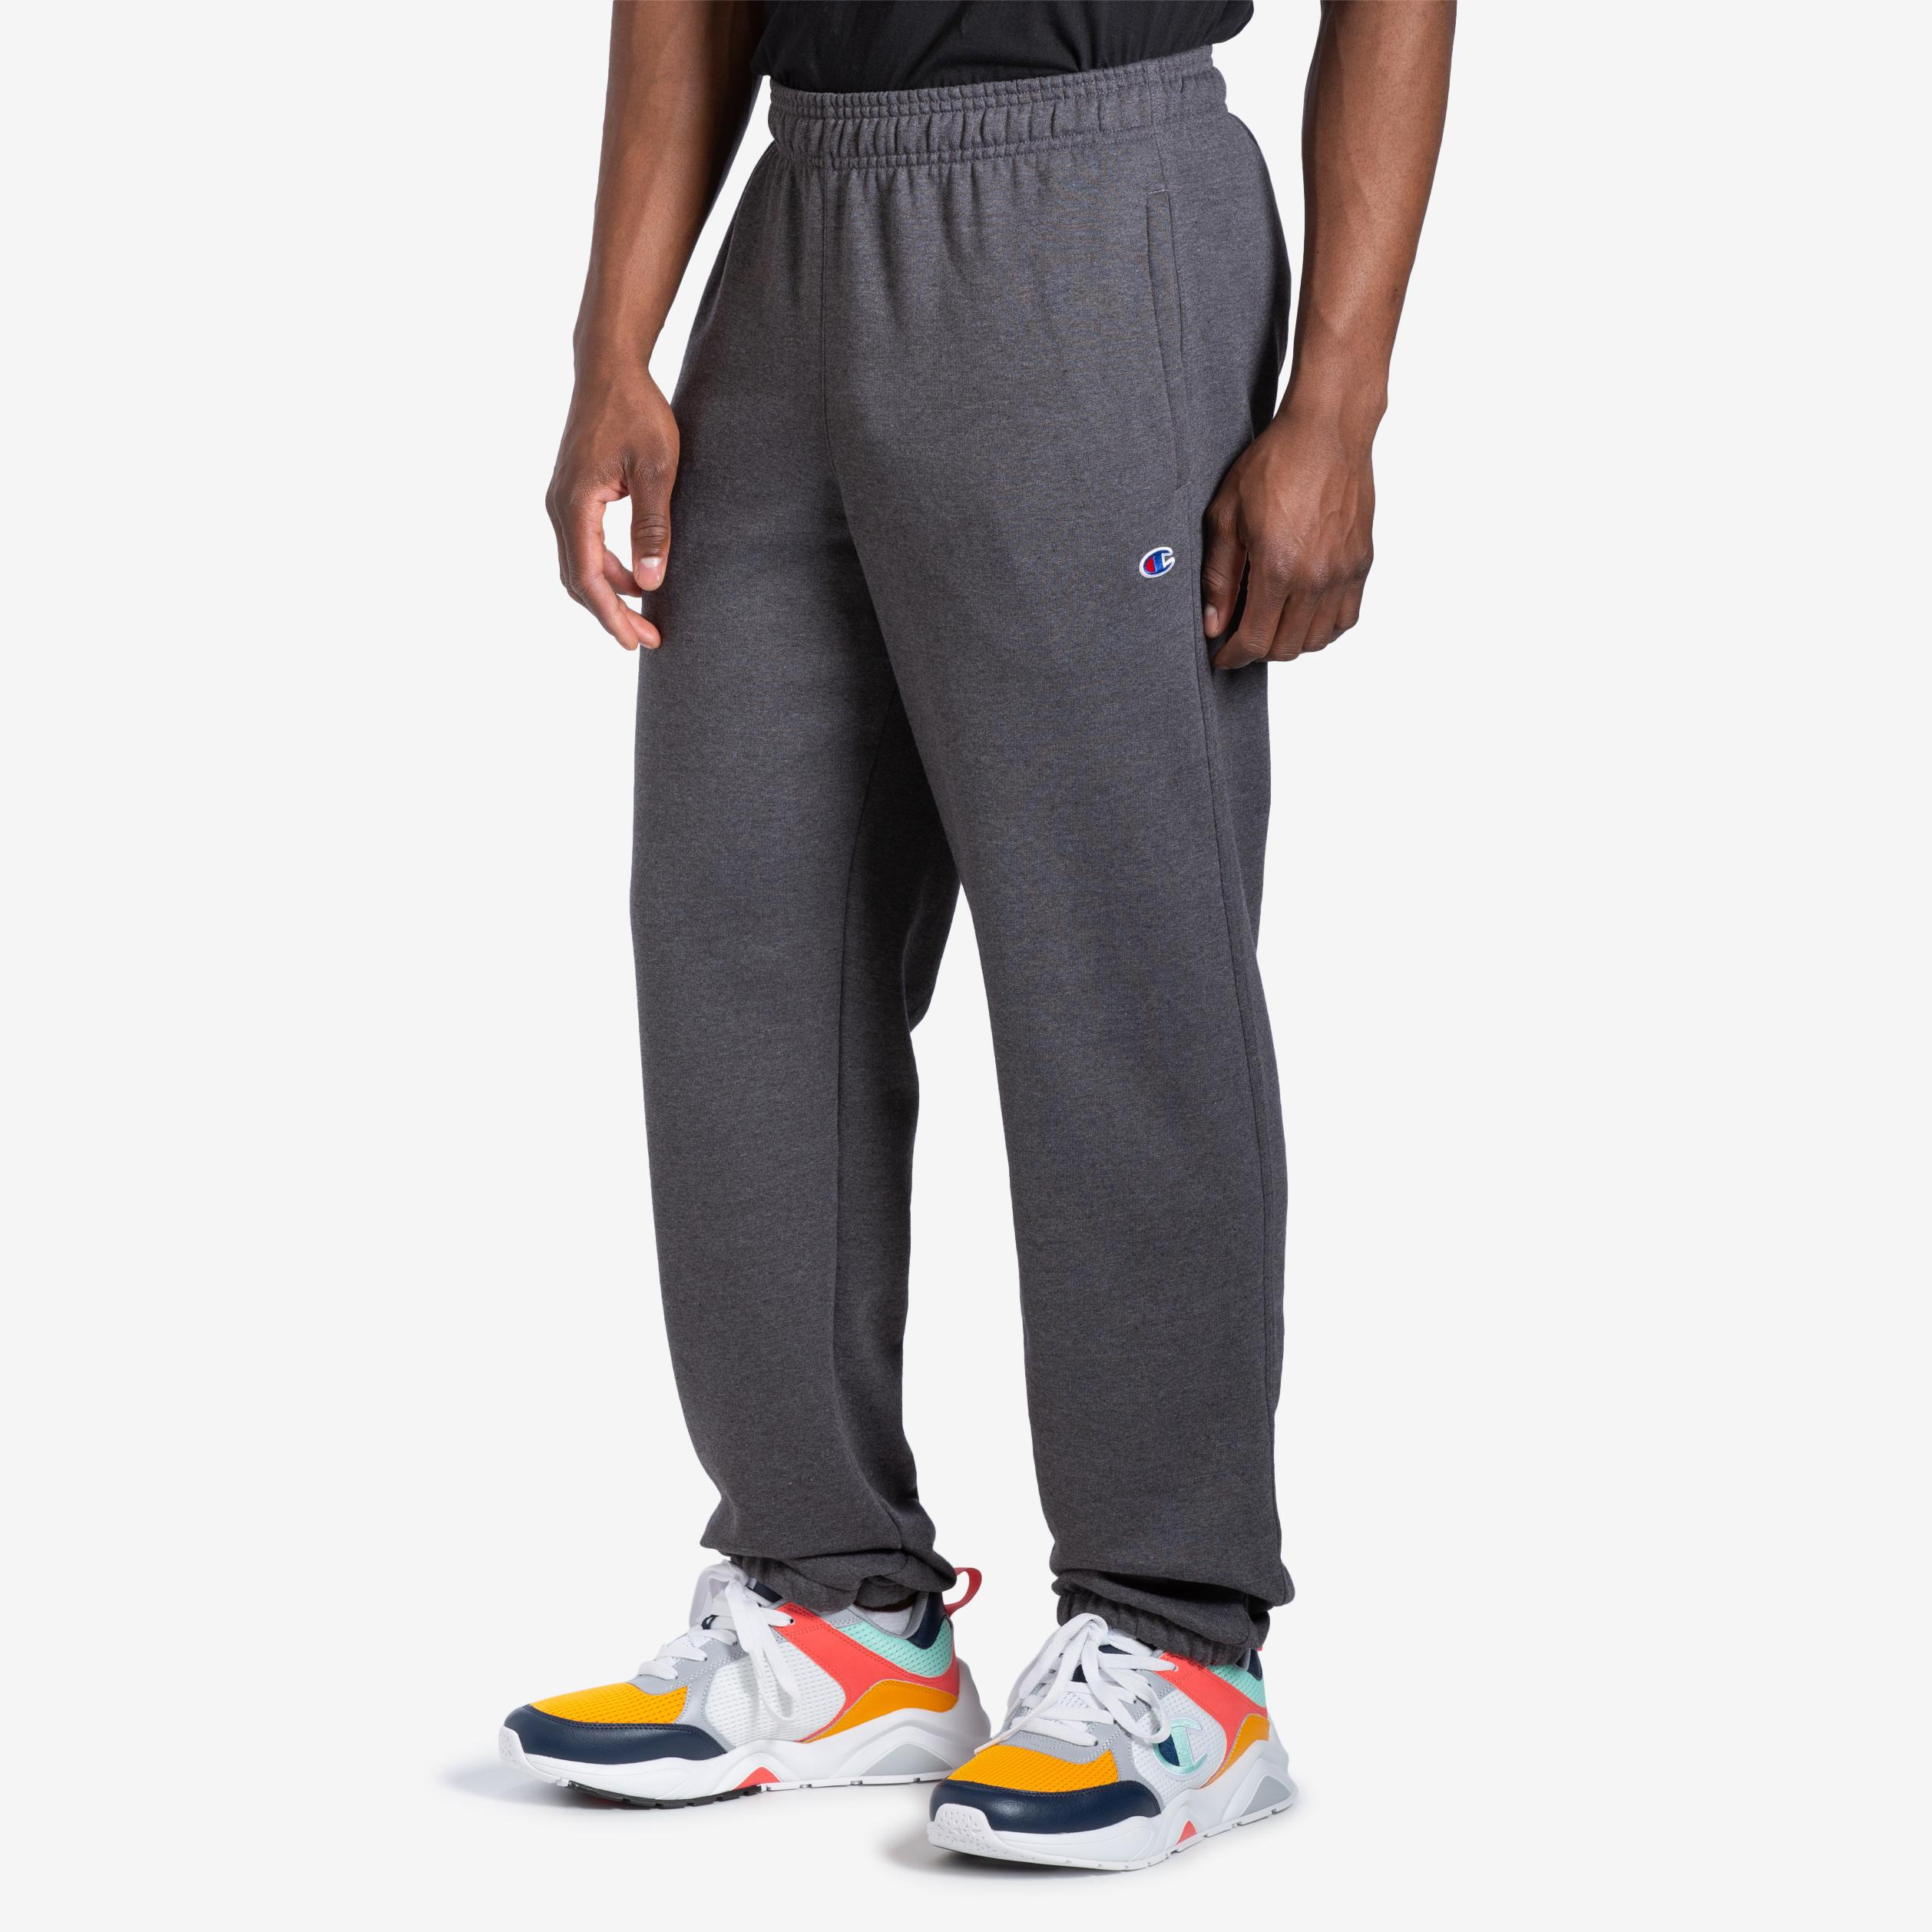 Powerblend Sweats Relaxed Bottom Pants